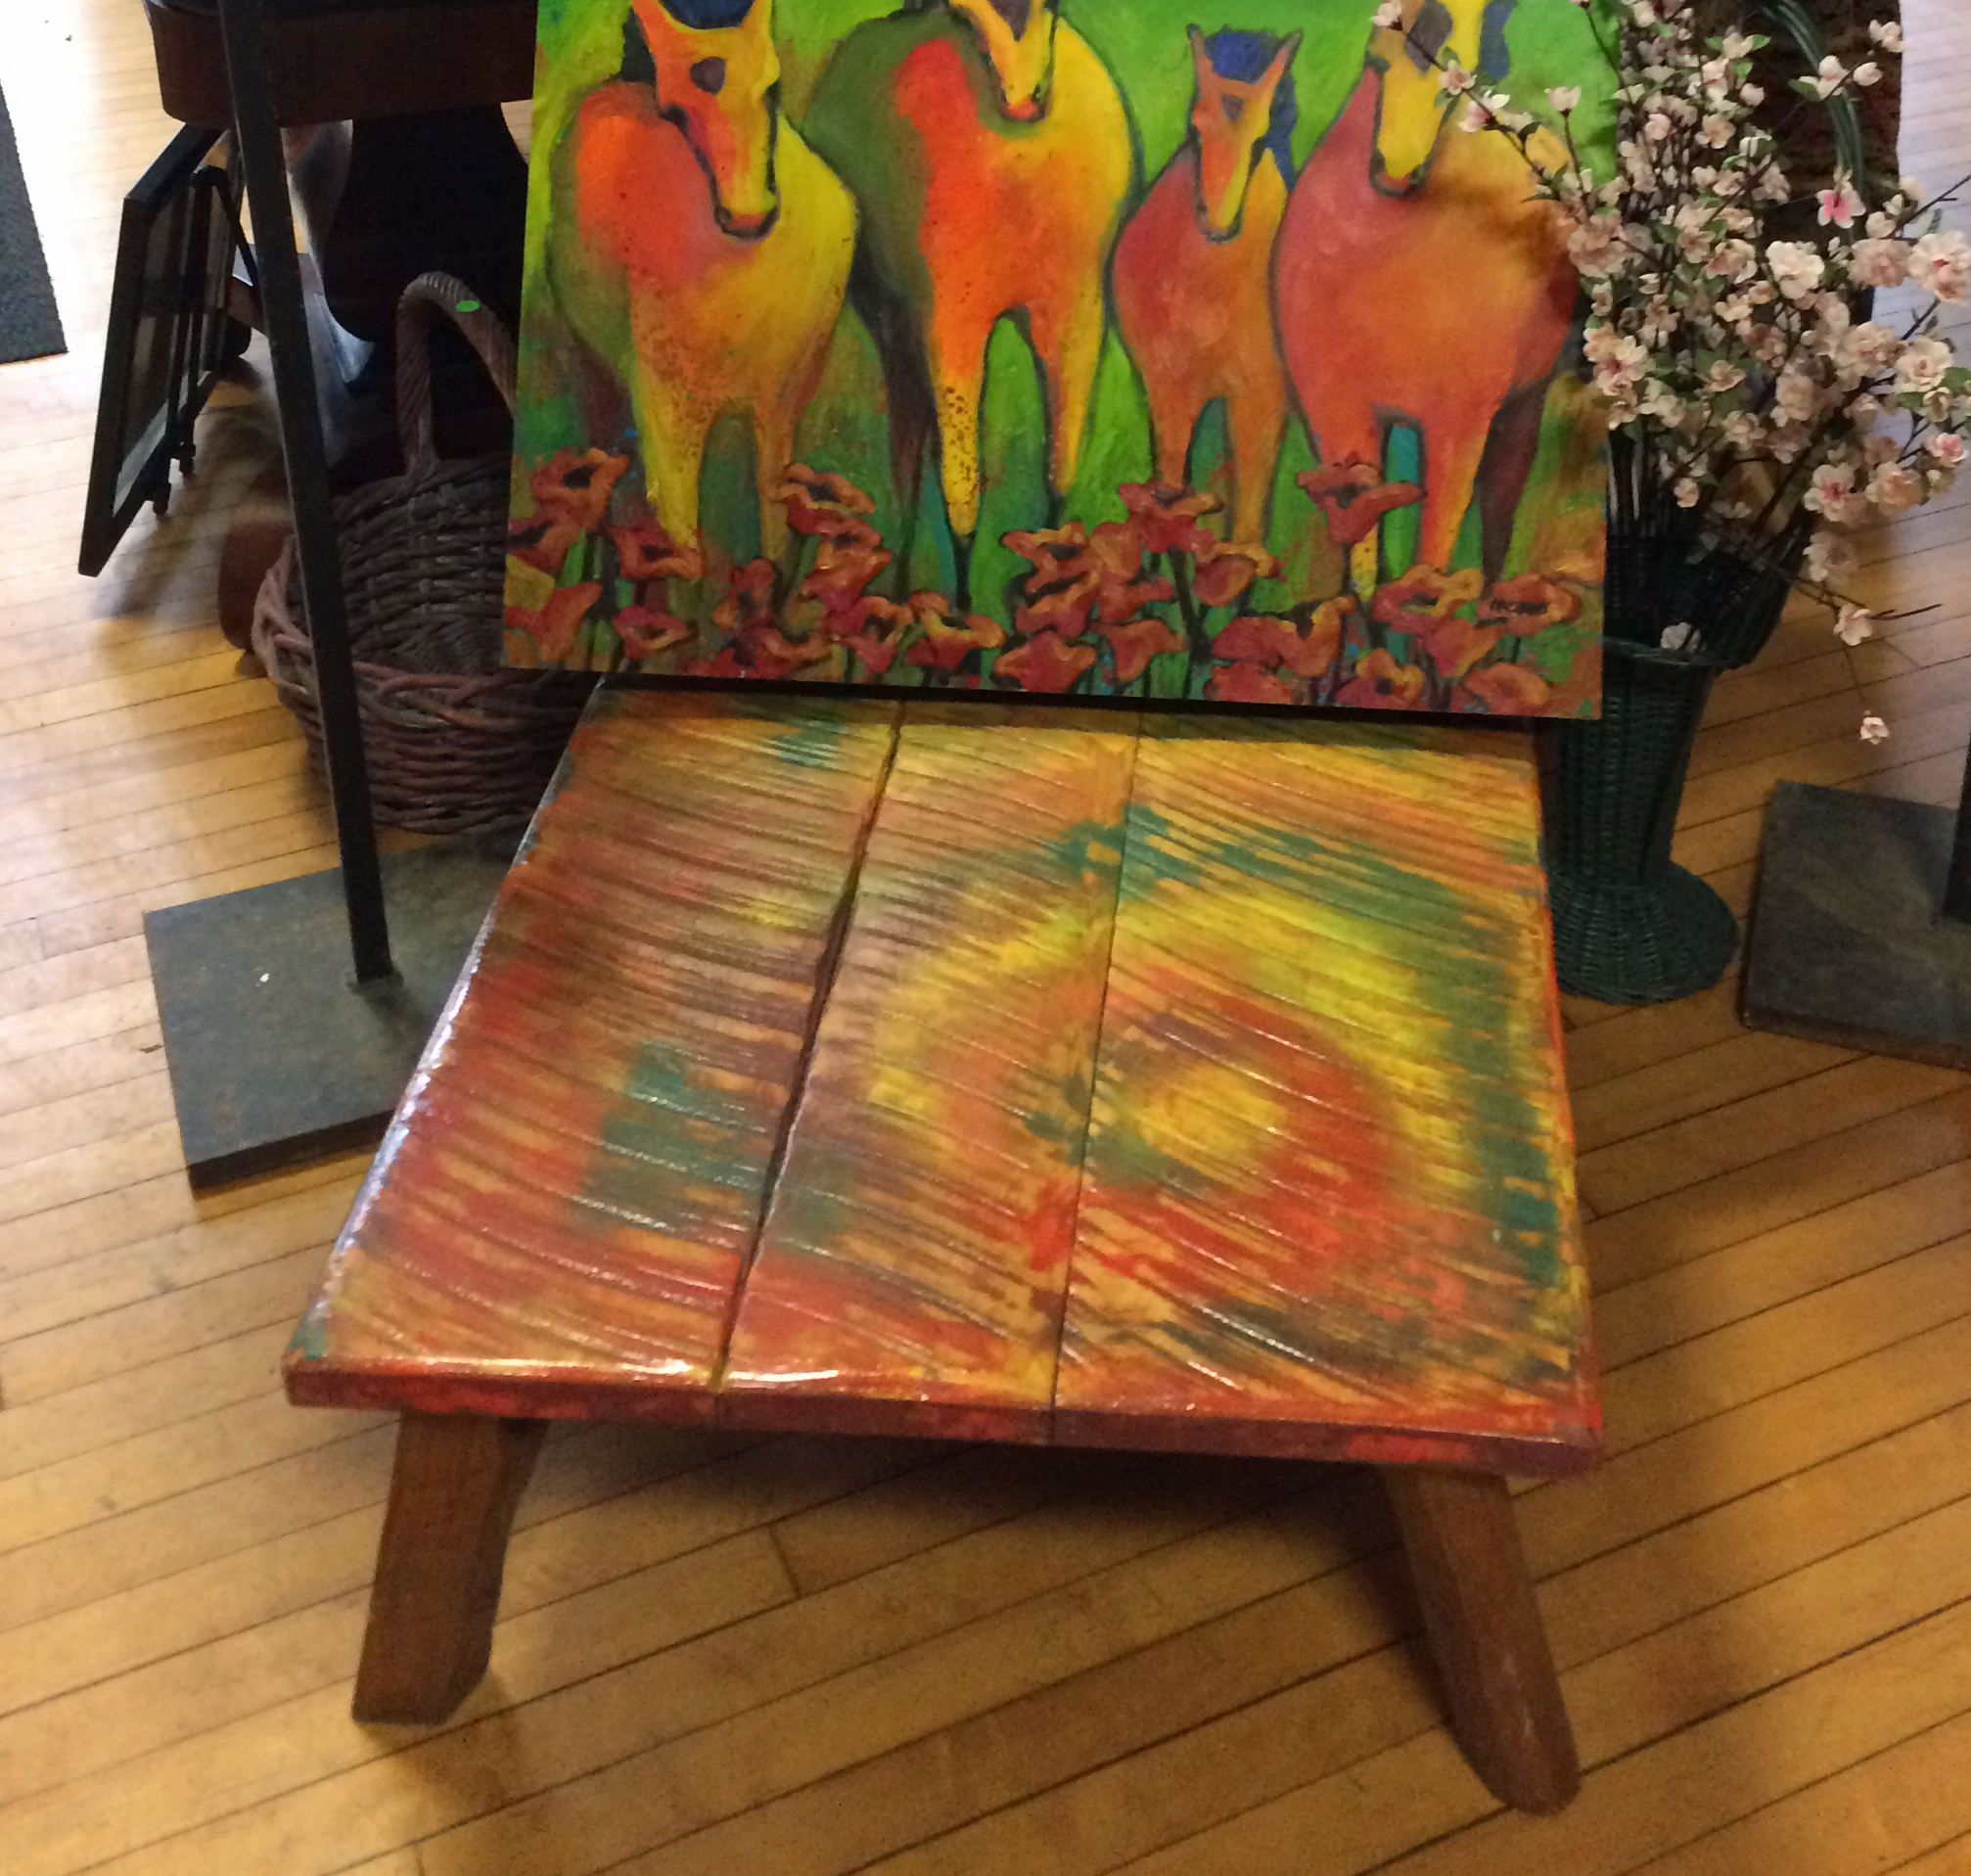 Ken Wollard, side table (in front of Erin Nazzaro painting)